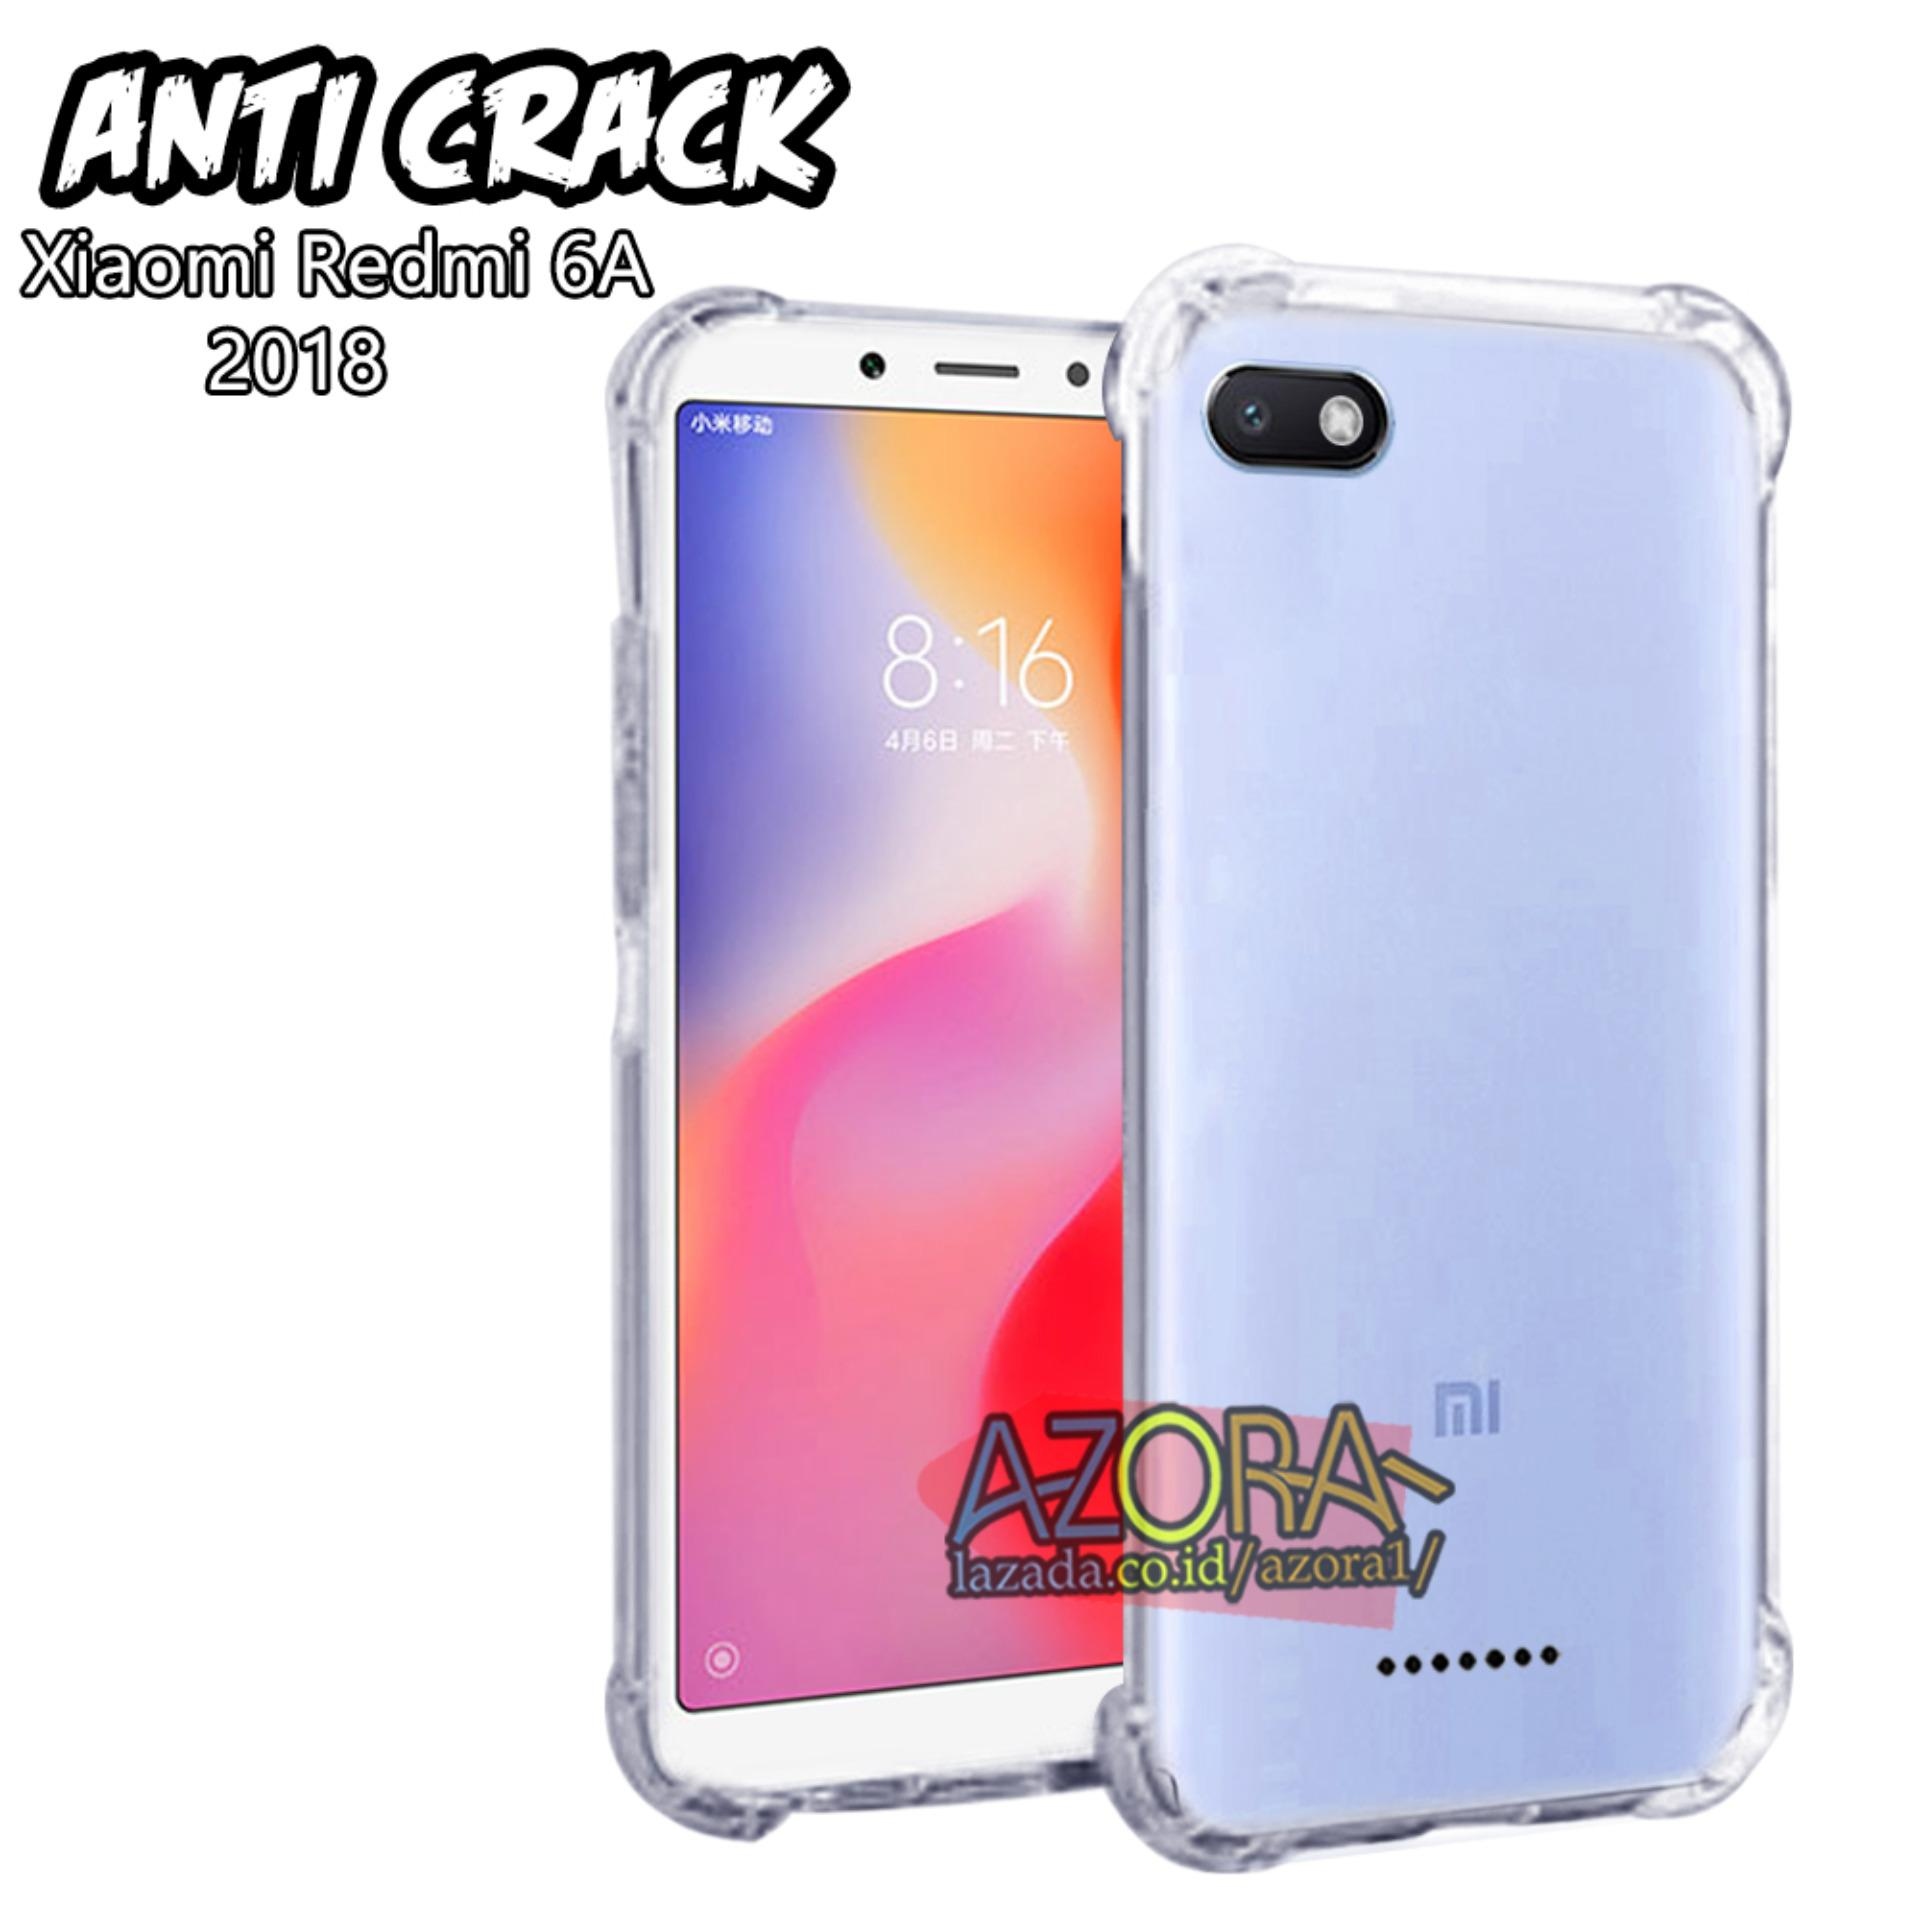 Case Anti Crack Xiaomi Redmi 6A 2018 Ultra Thin Anti Shock Jelly Silikon Shockproof Softcase Azora - Bening